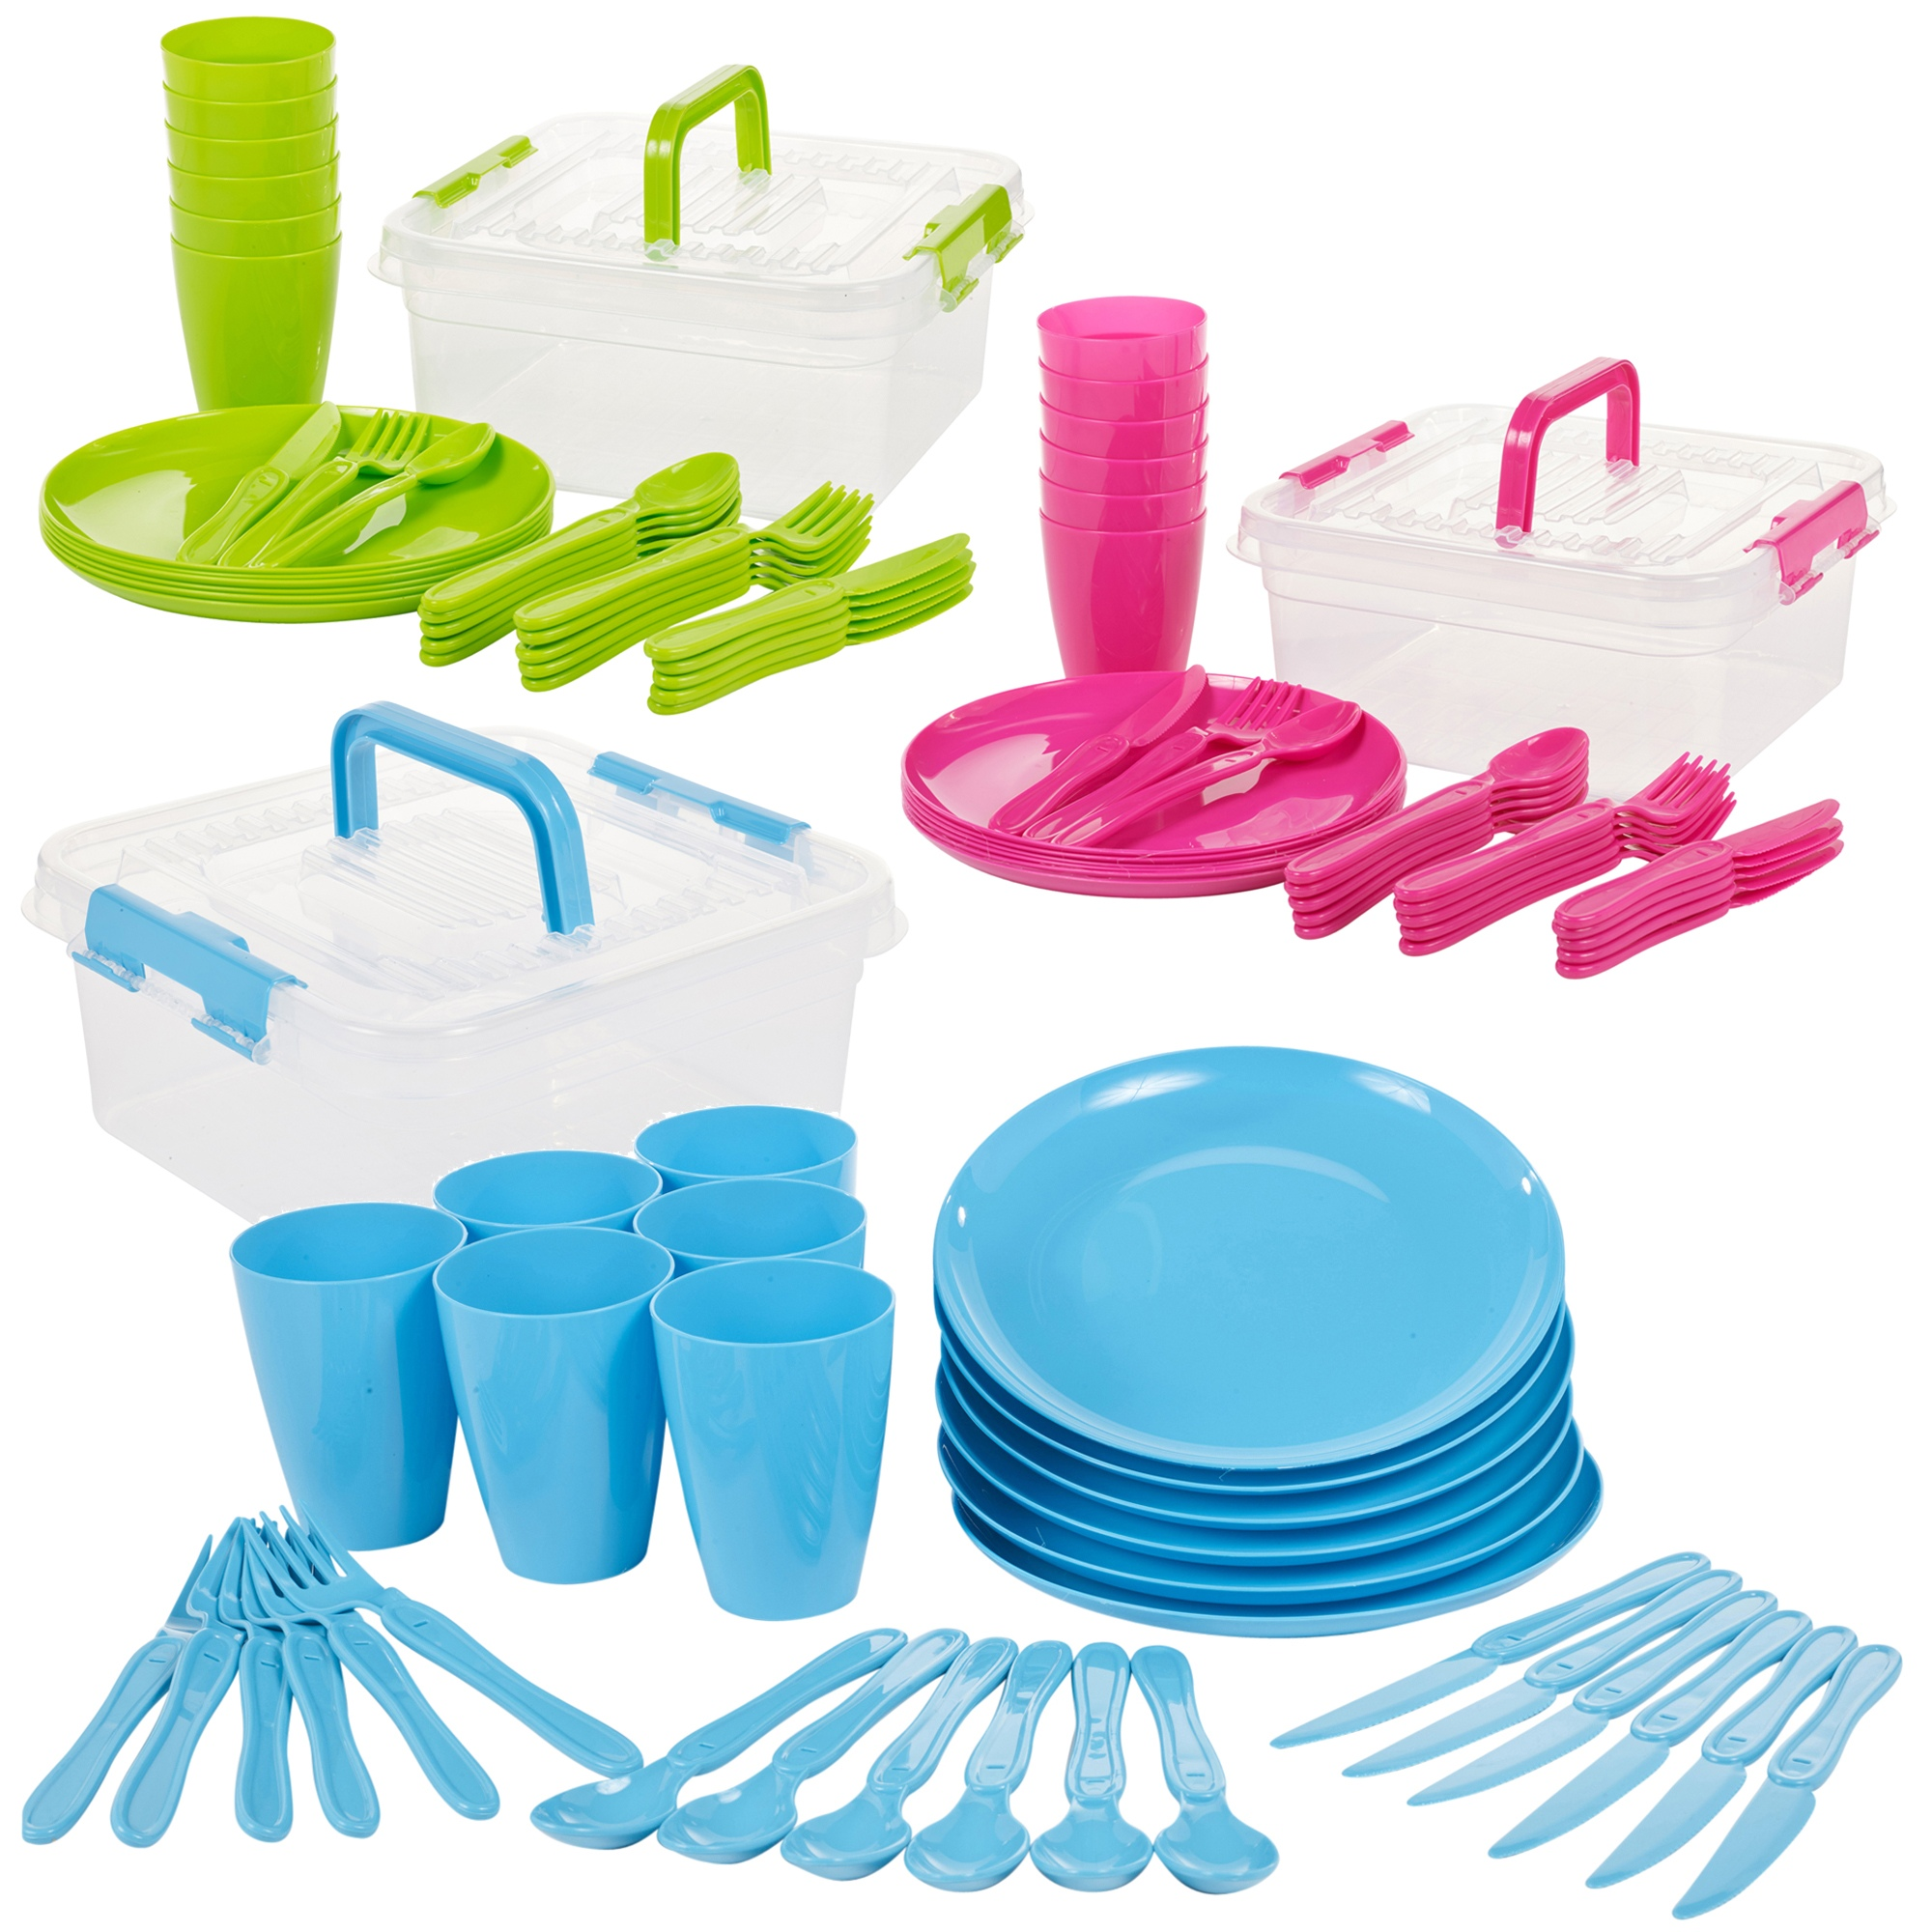 31 Piece Camping Picnic Plastic Utensil Set Knives Fork Spoon Cups /& Plates